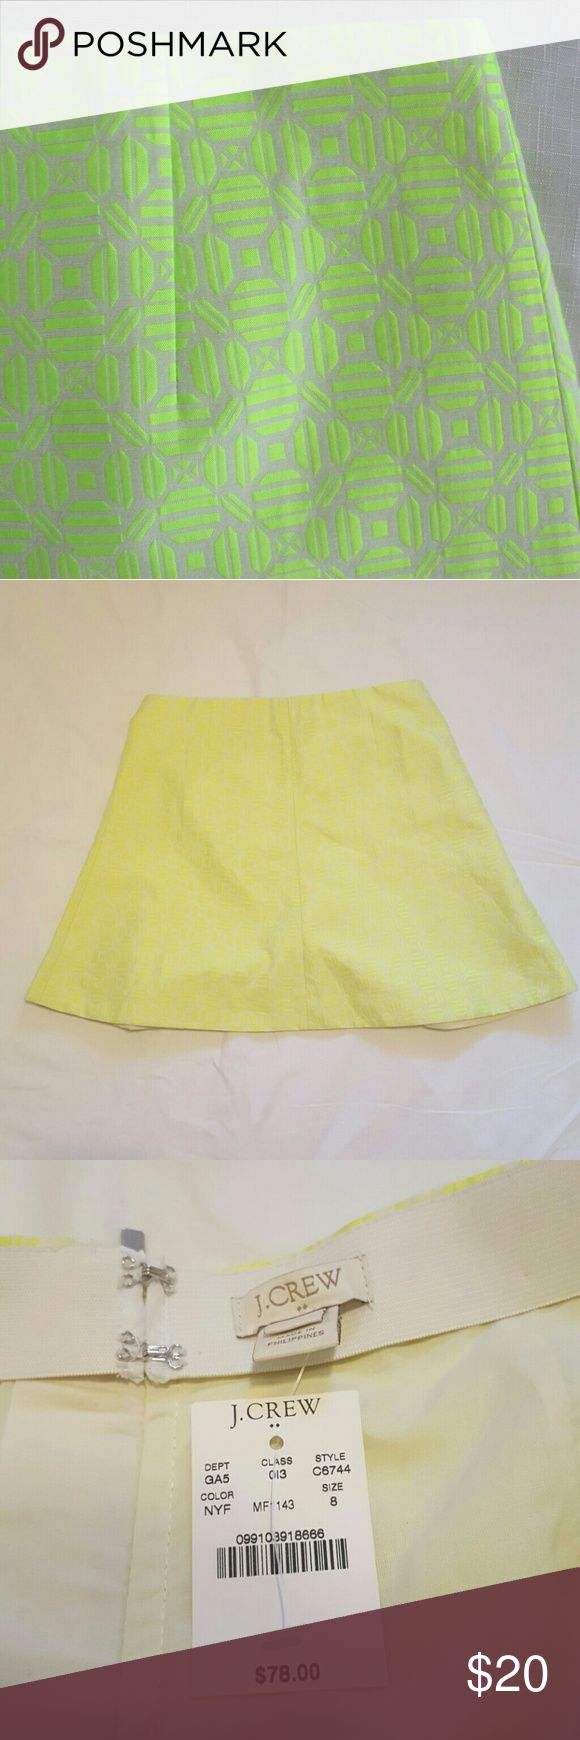 J Crew NWT Neon Yellow Skirt Neon yellow skirt. New with tags. Smoke-free home. Offers accepted. J. Crew Factory Skirts